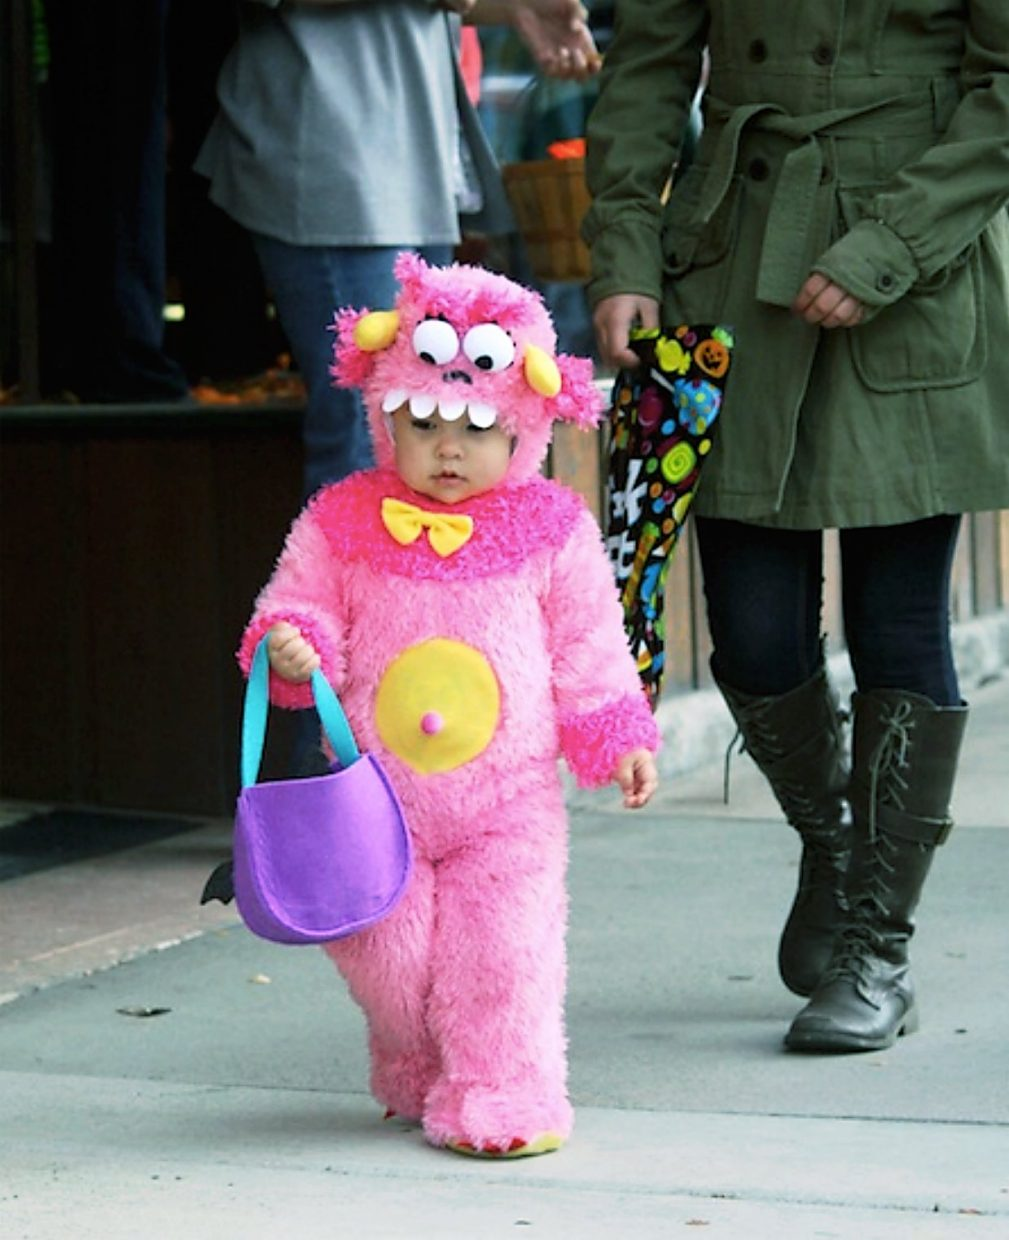 Stephanie Wittrock, 1, walks toward some business owners passing out candy on Third Street in Rifle.